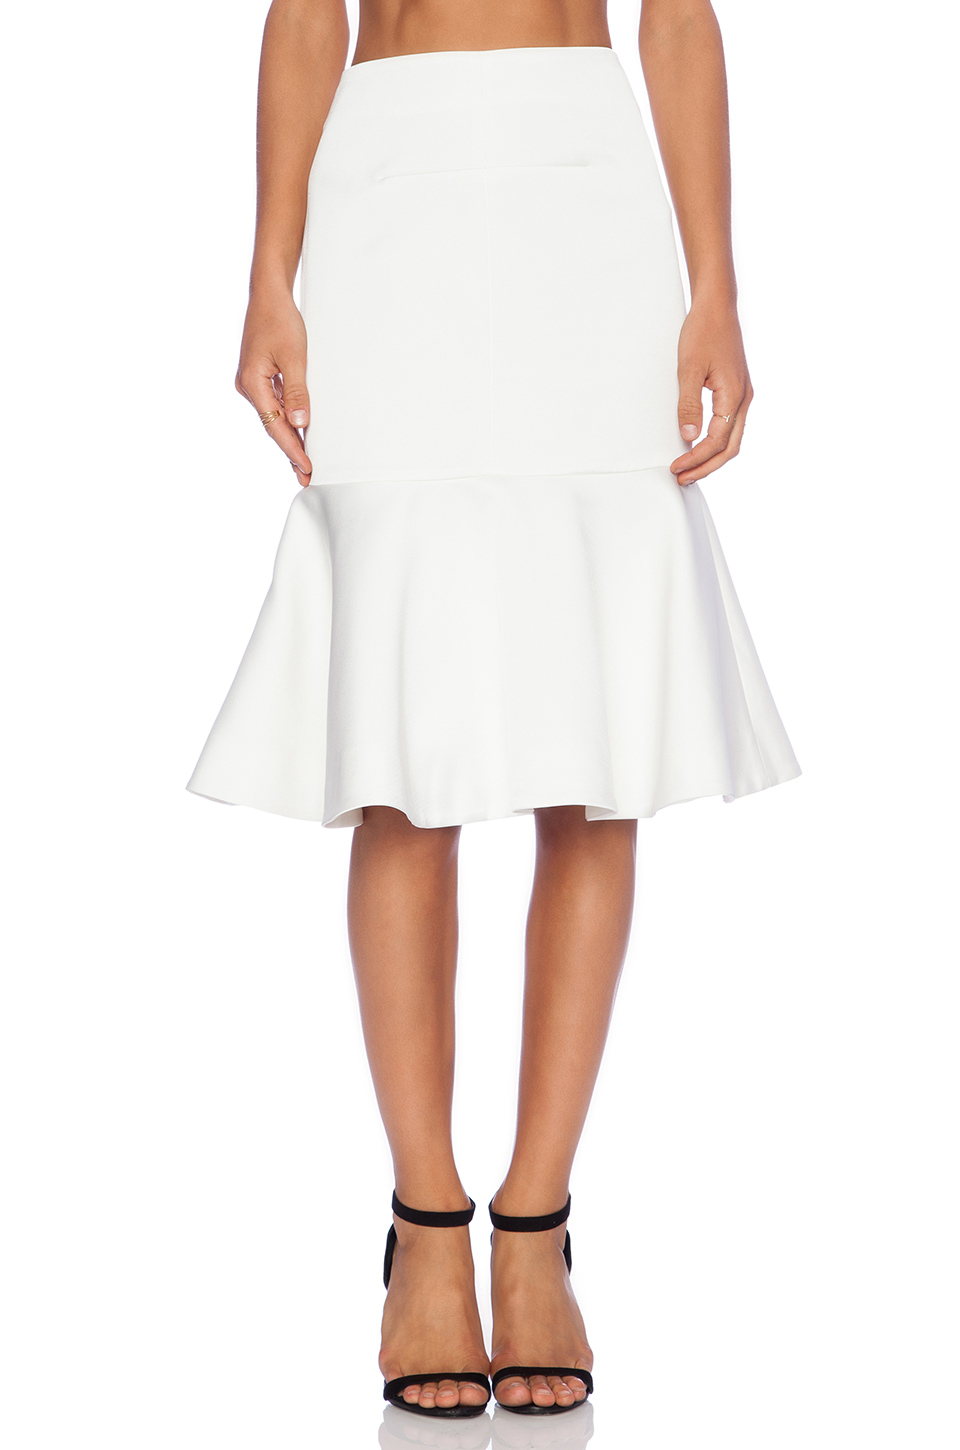 Cameo no diggity flare skirt in ivory from revolveclothing.com